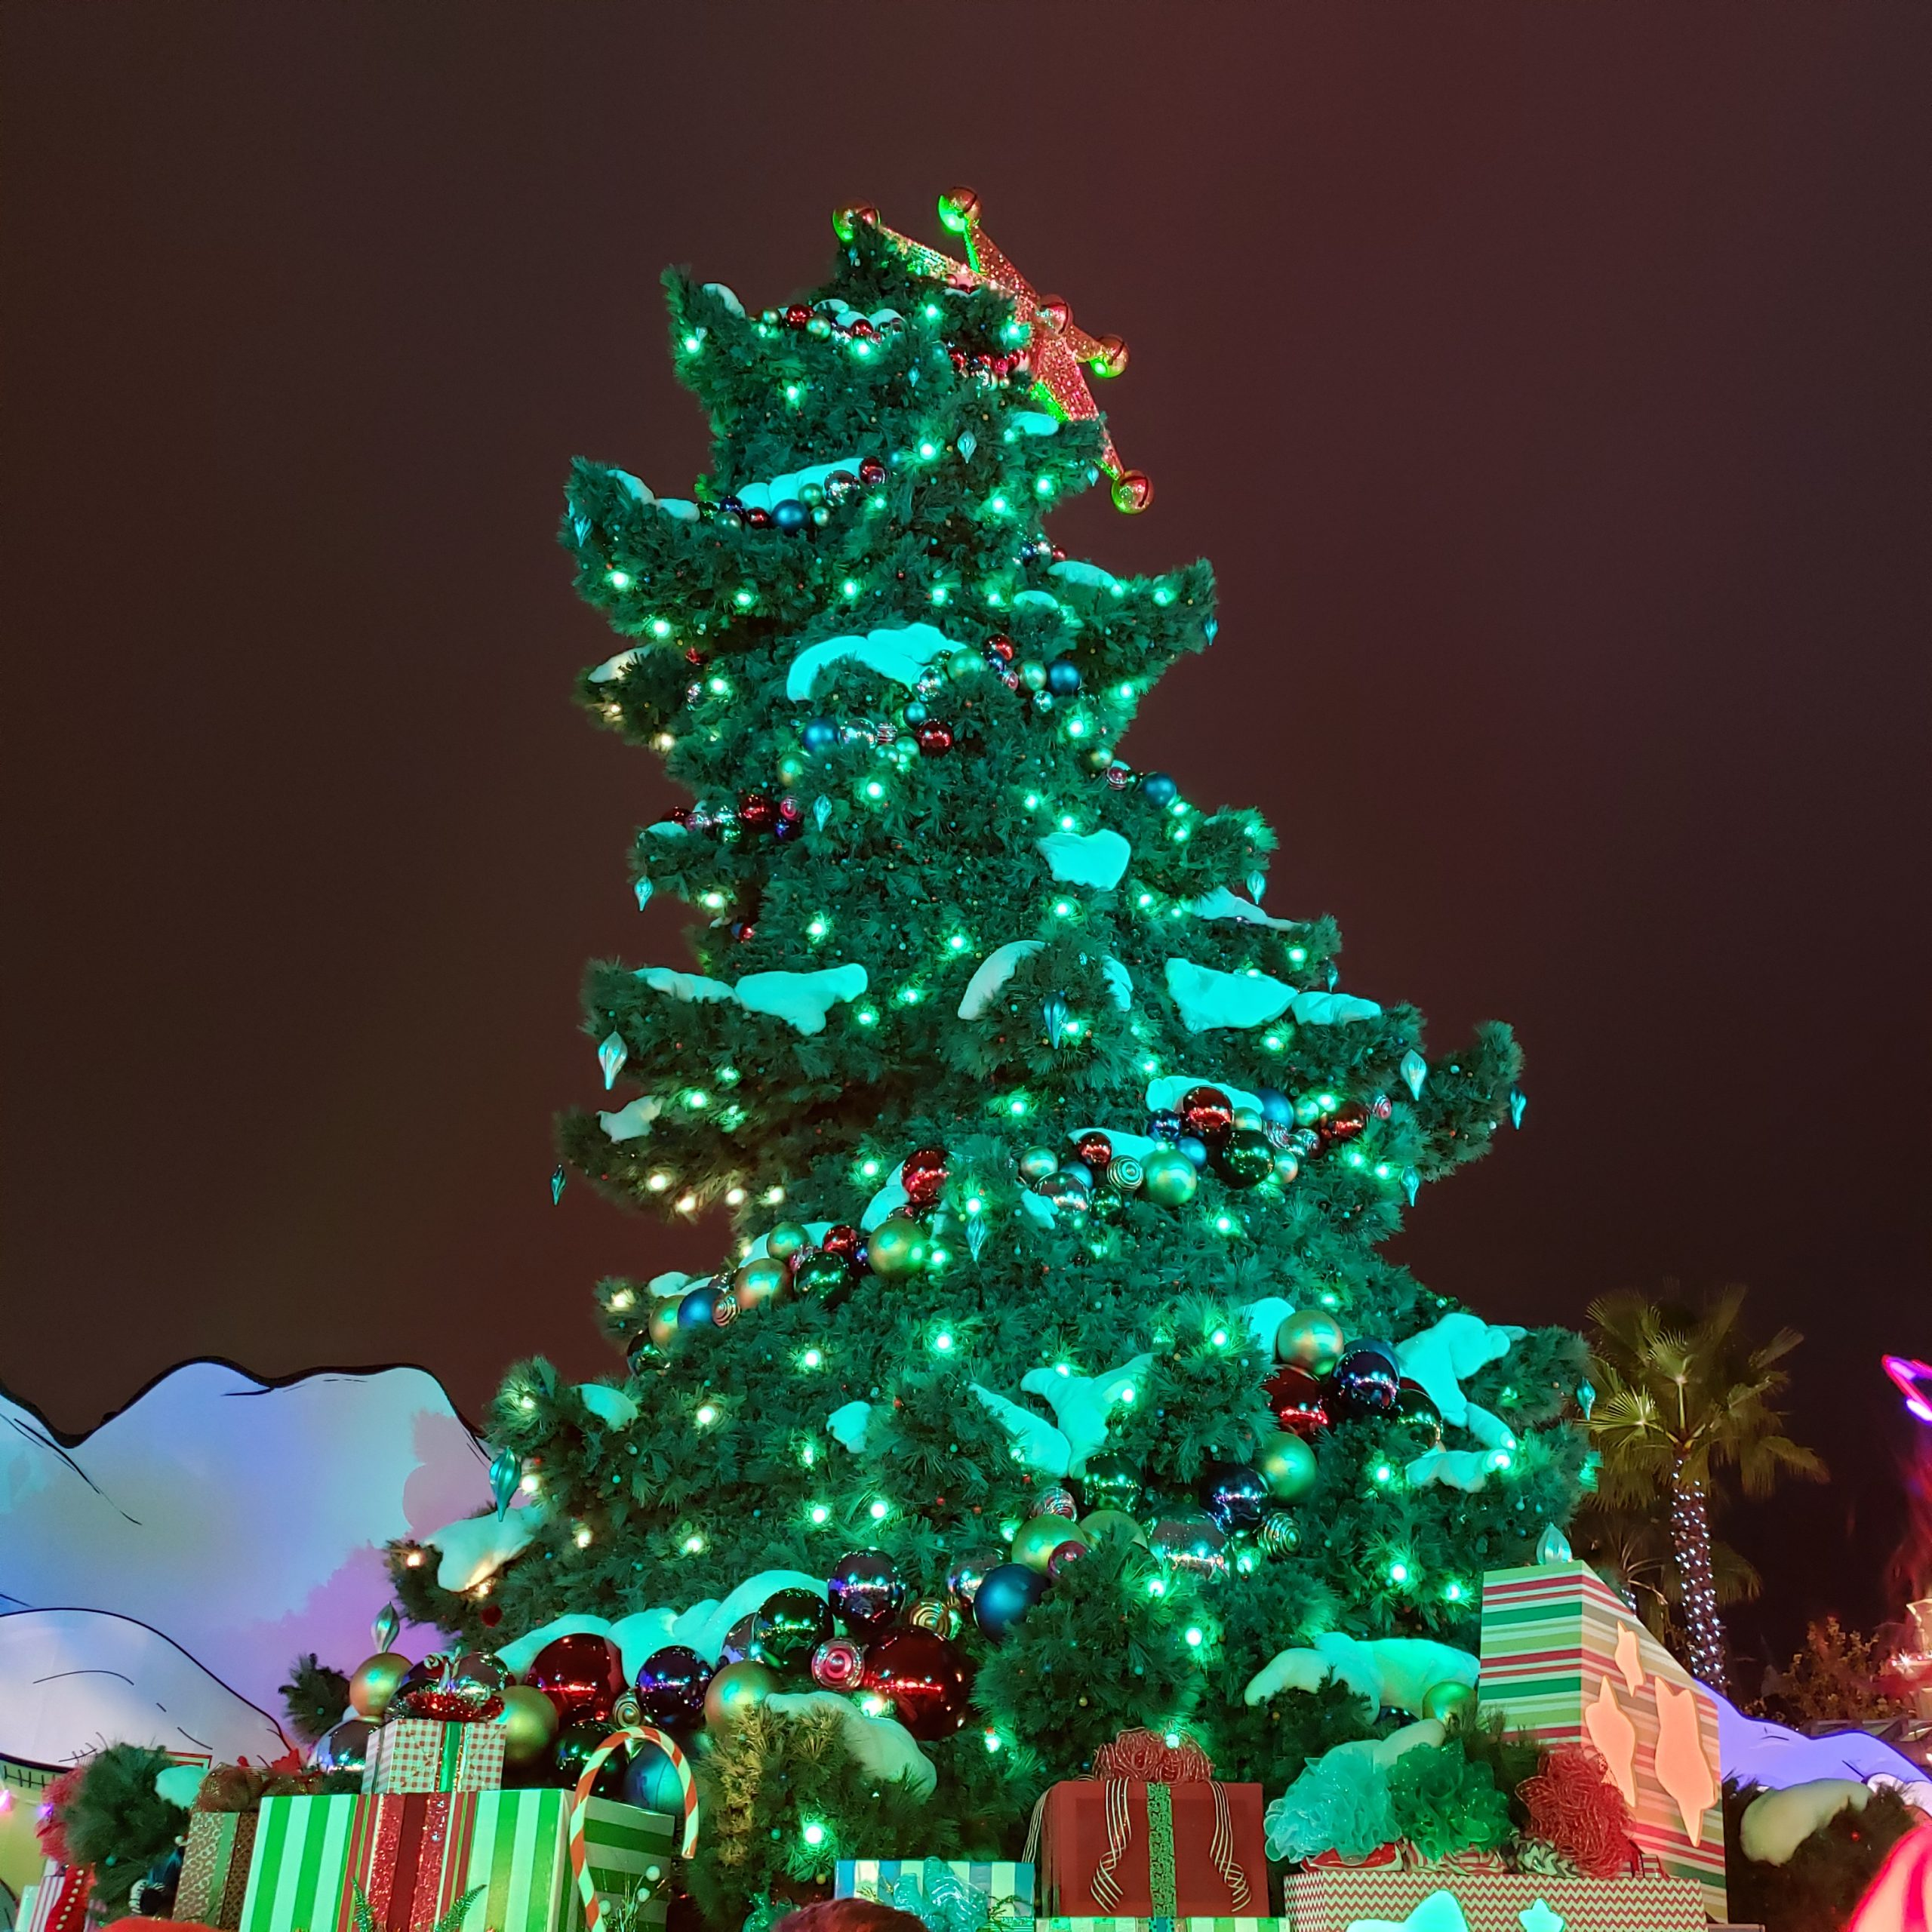 Catch the tree lighting every half hour!